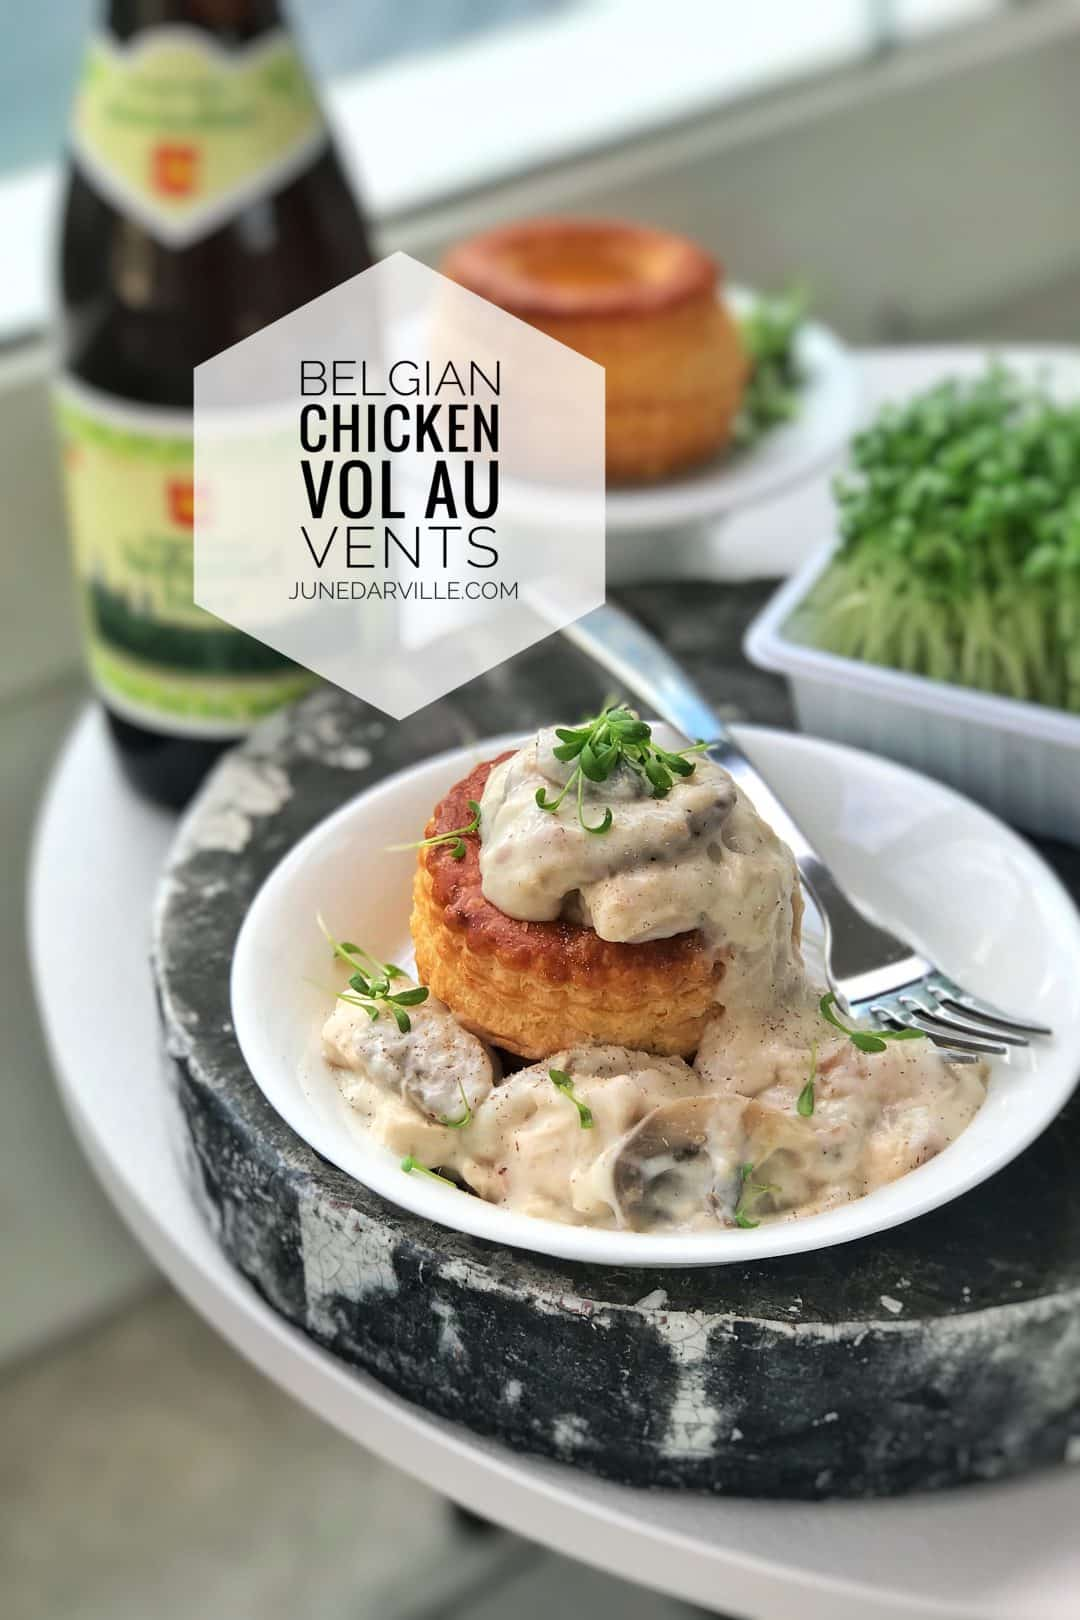 Savory Belgian chicken vol au vents: shredded chicken with veal meatballs and mushroom in a creamy white sauce... Classic!